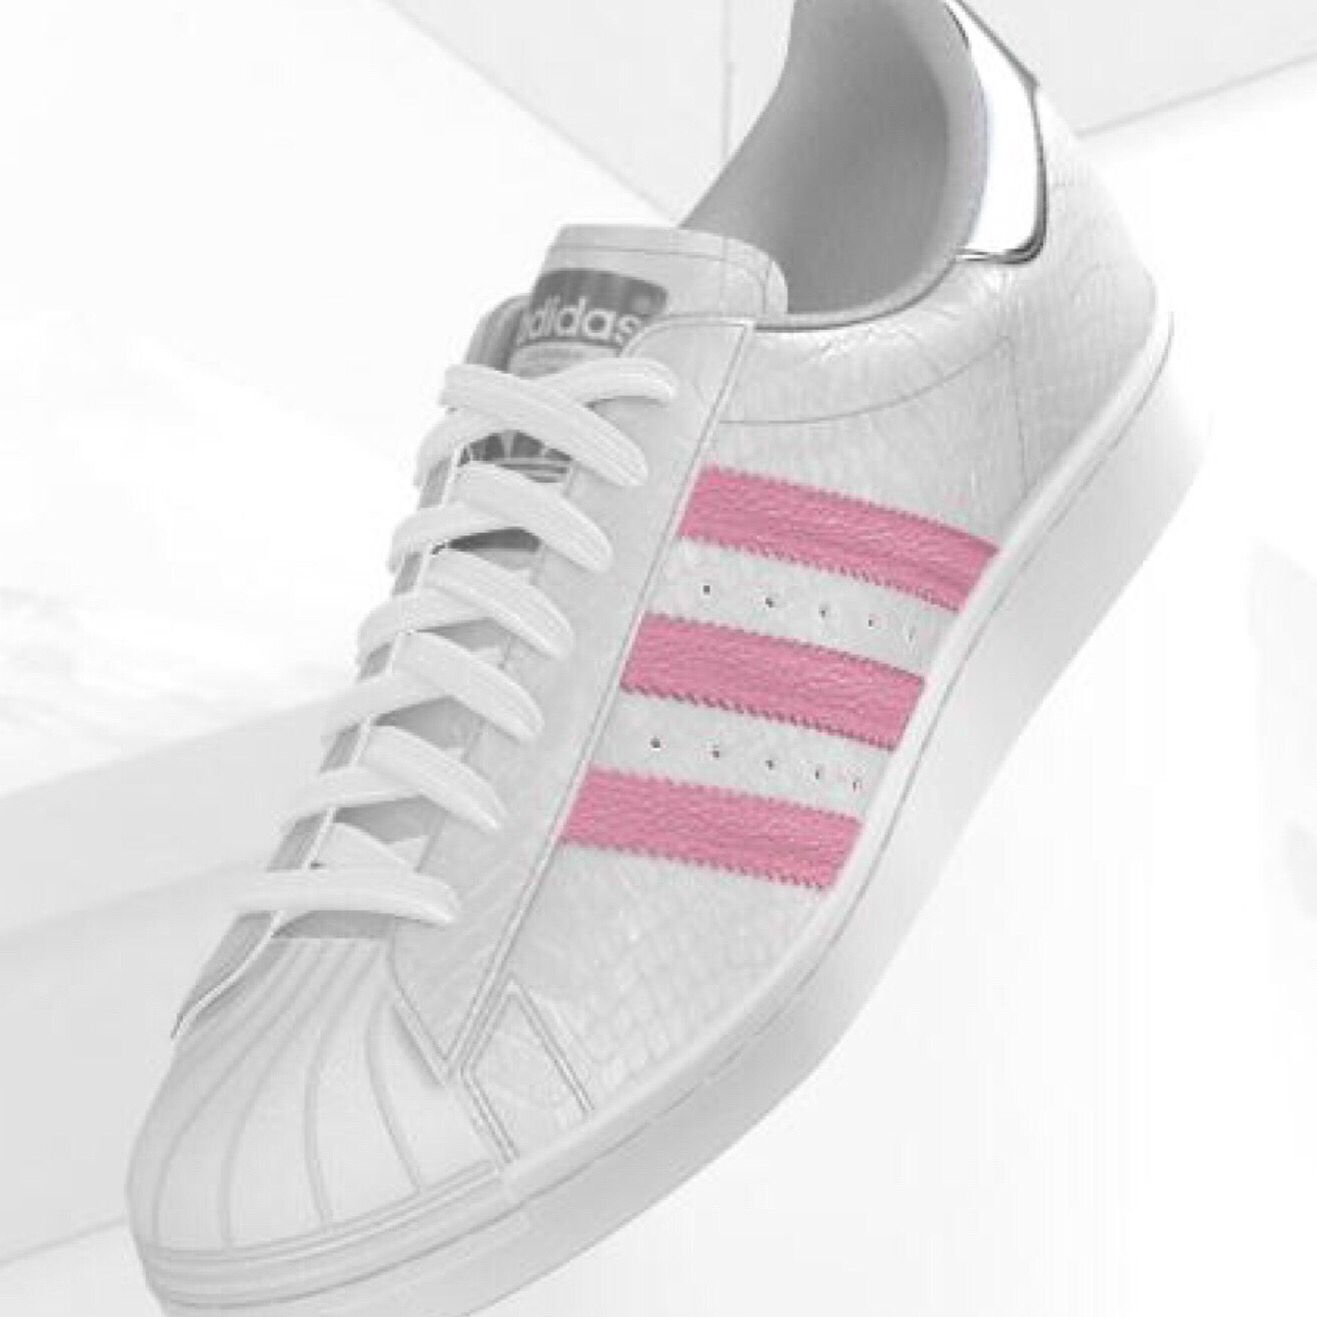 adidas superstar rose croco